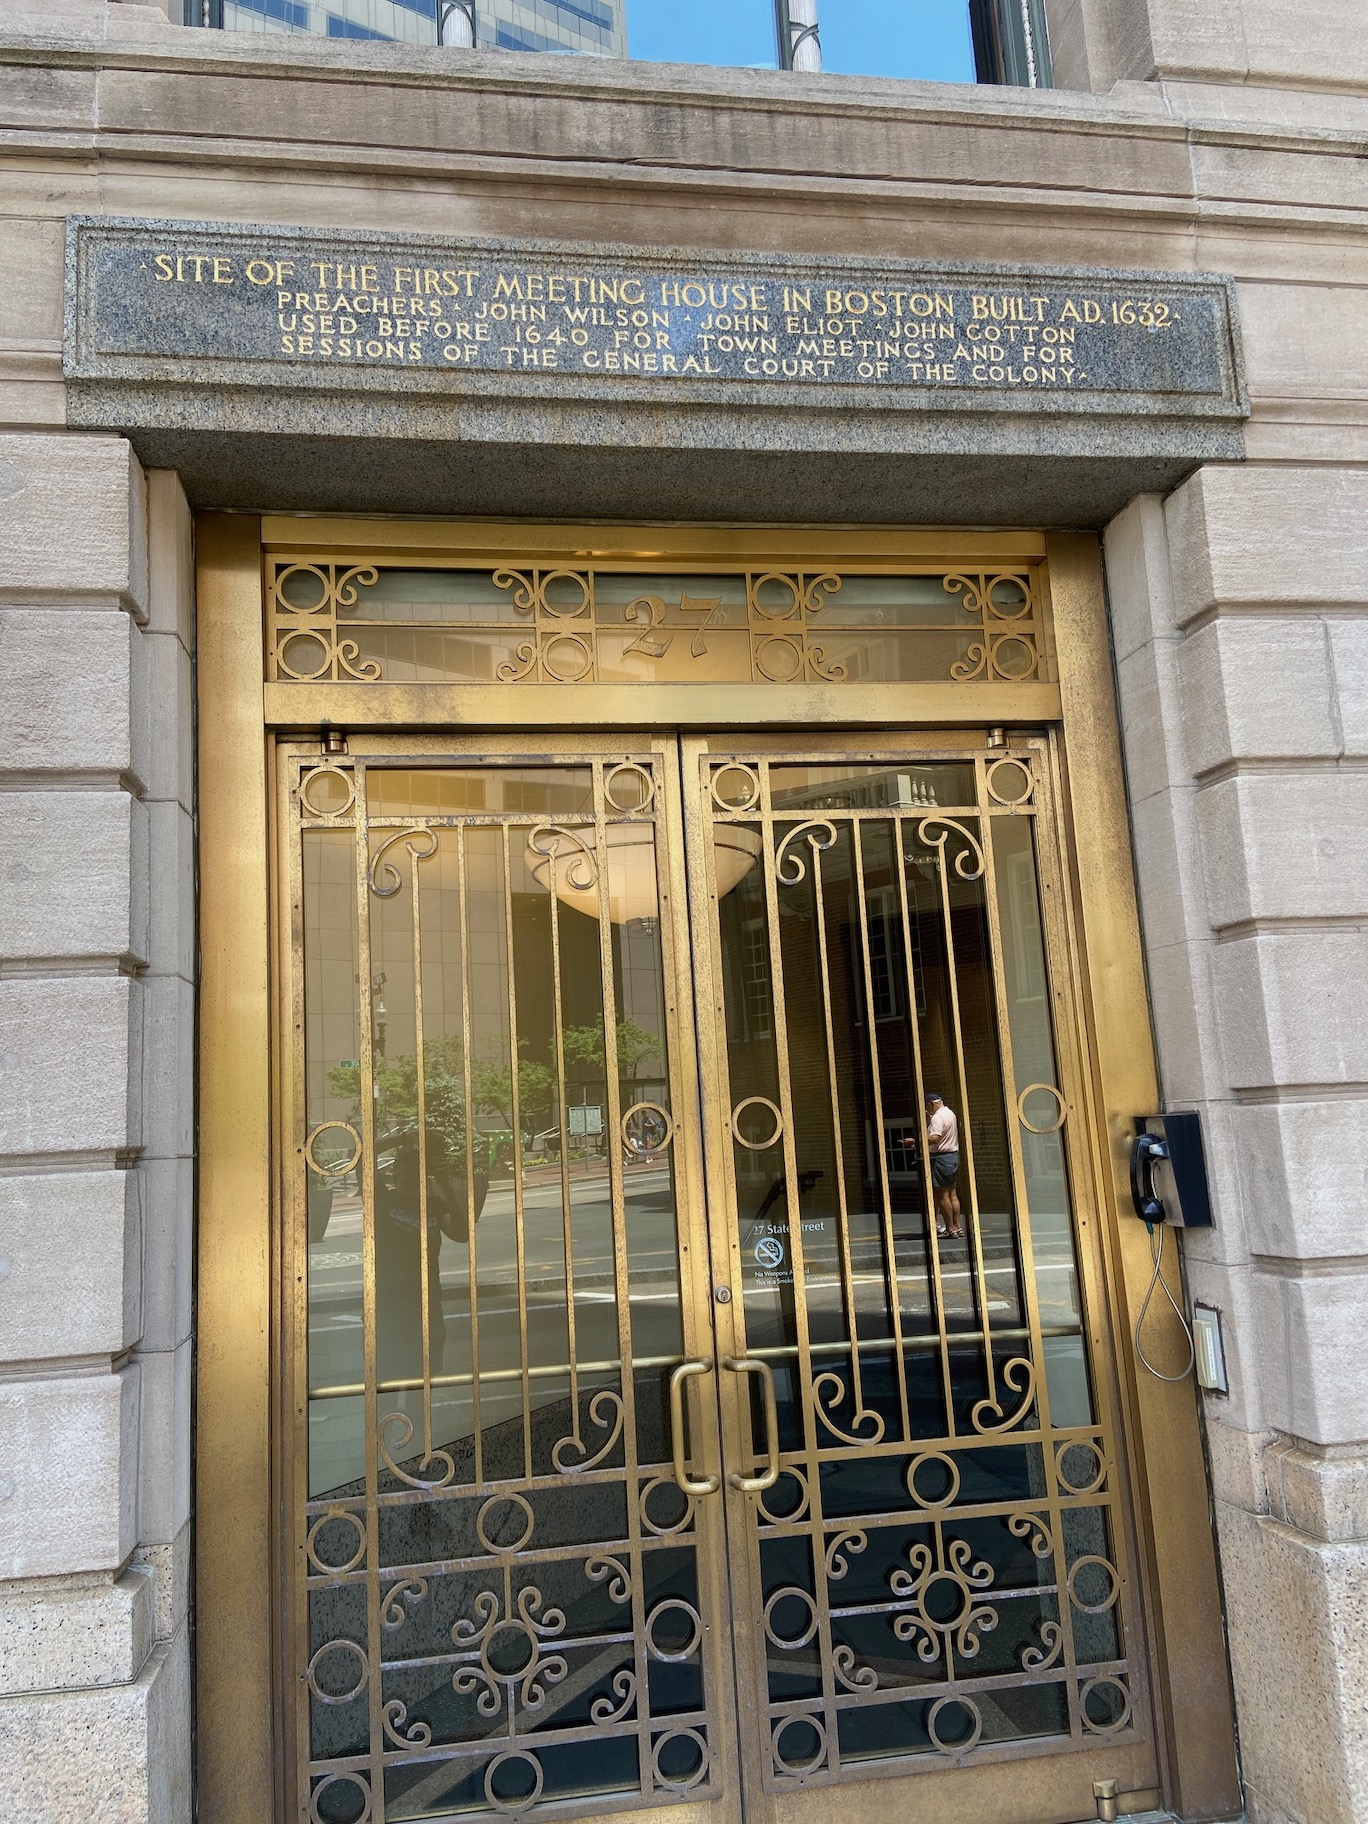 """Image of a building in Boston with golden doors with sign that reads """"SITE of the first meeting house in Boston Build AD 1632"""""""